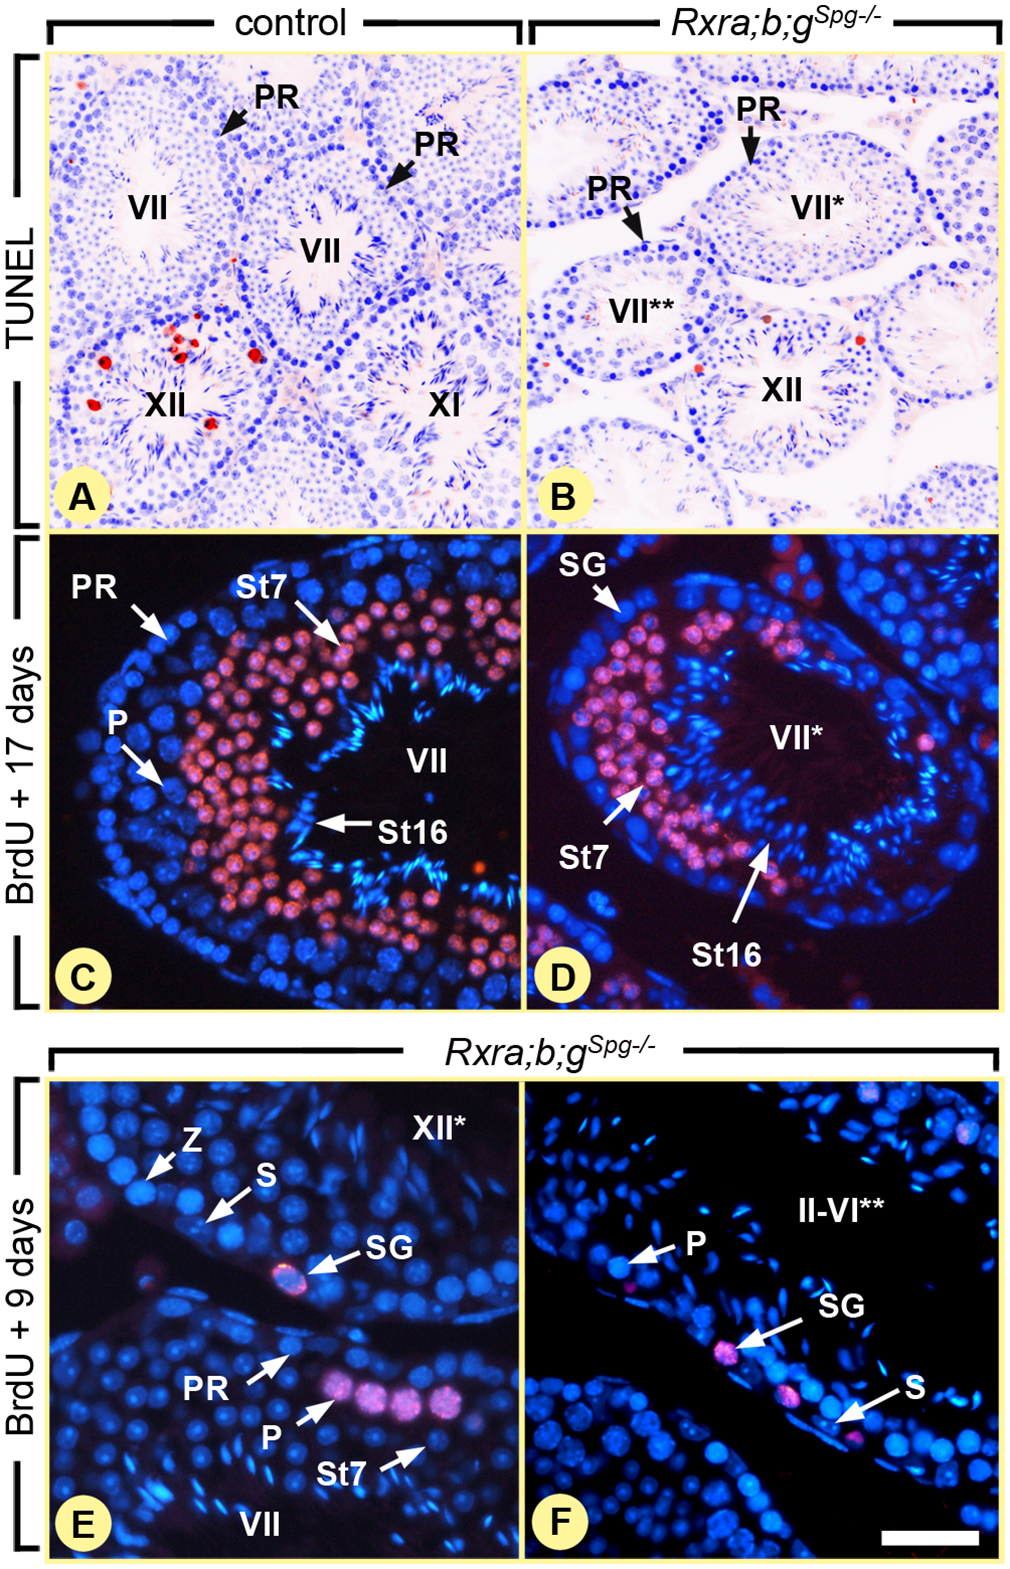 Ablation of RXR in spermatogonia blocks their division, but does not affect meiosis.